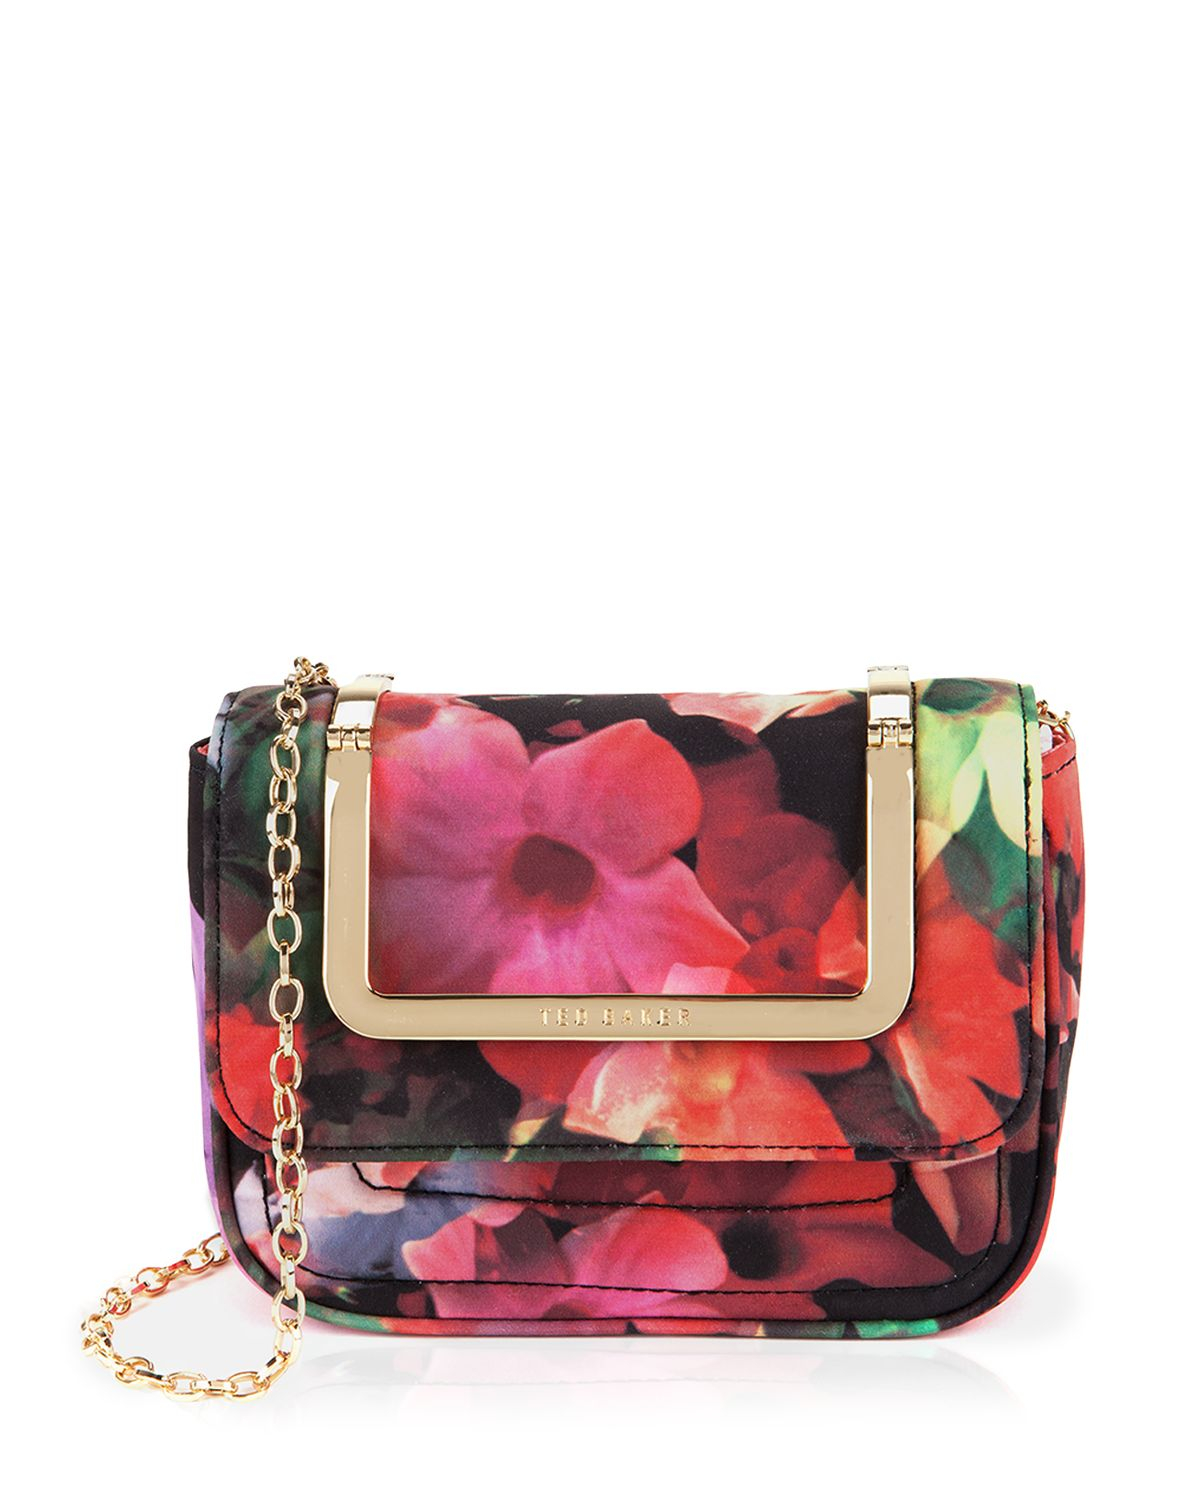 Lyst - Ted Baker Crossbody - Cassiee Cascading Floral